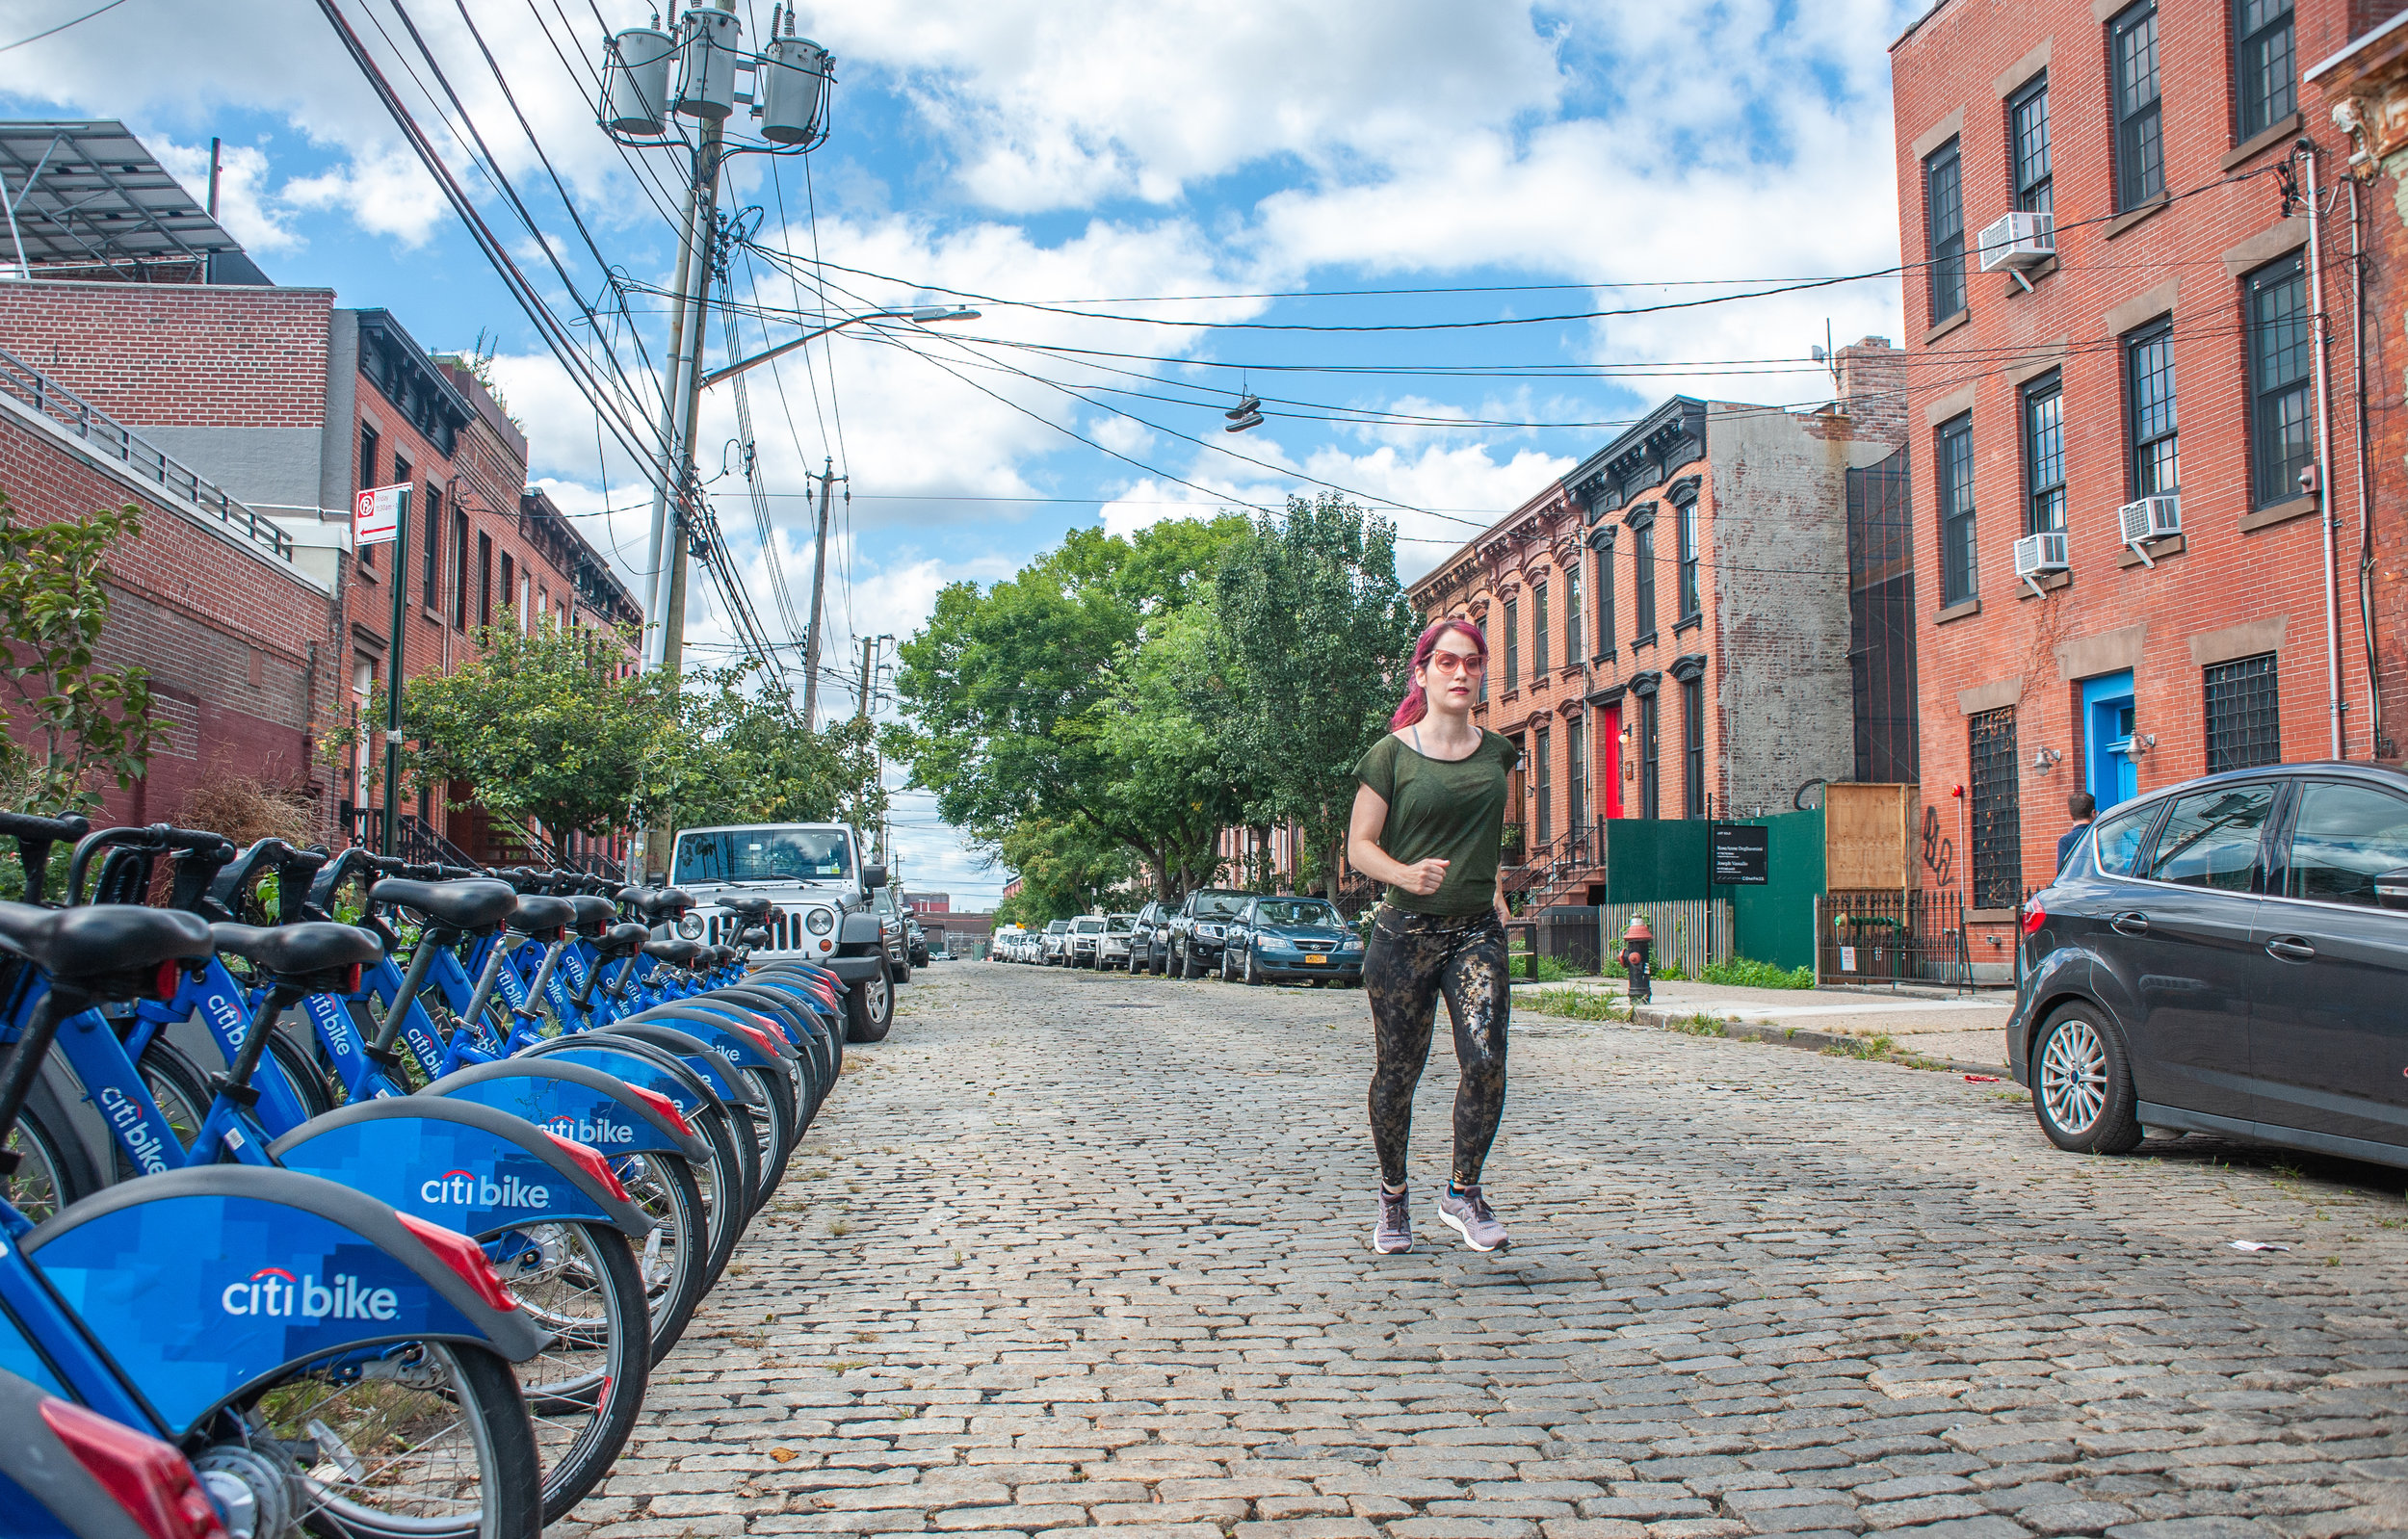 Red Hook, full of quiet streets, is a nice getaway from the hustle and bustle of NYC.